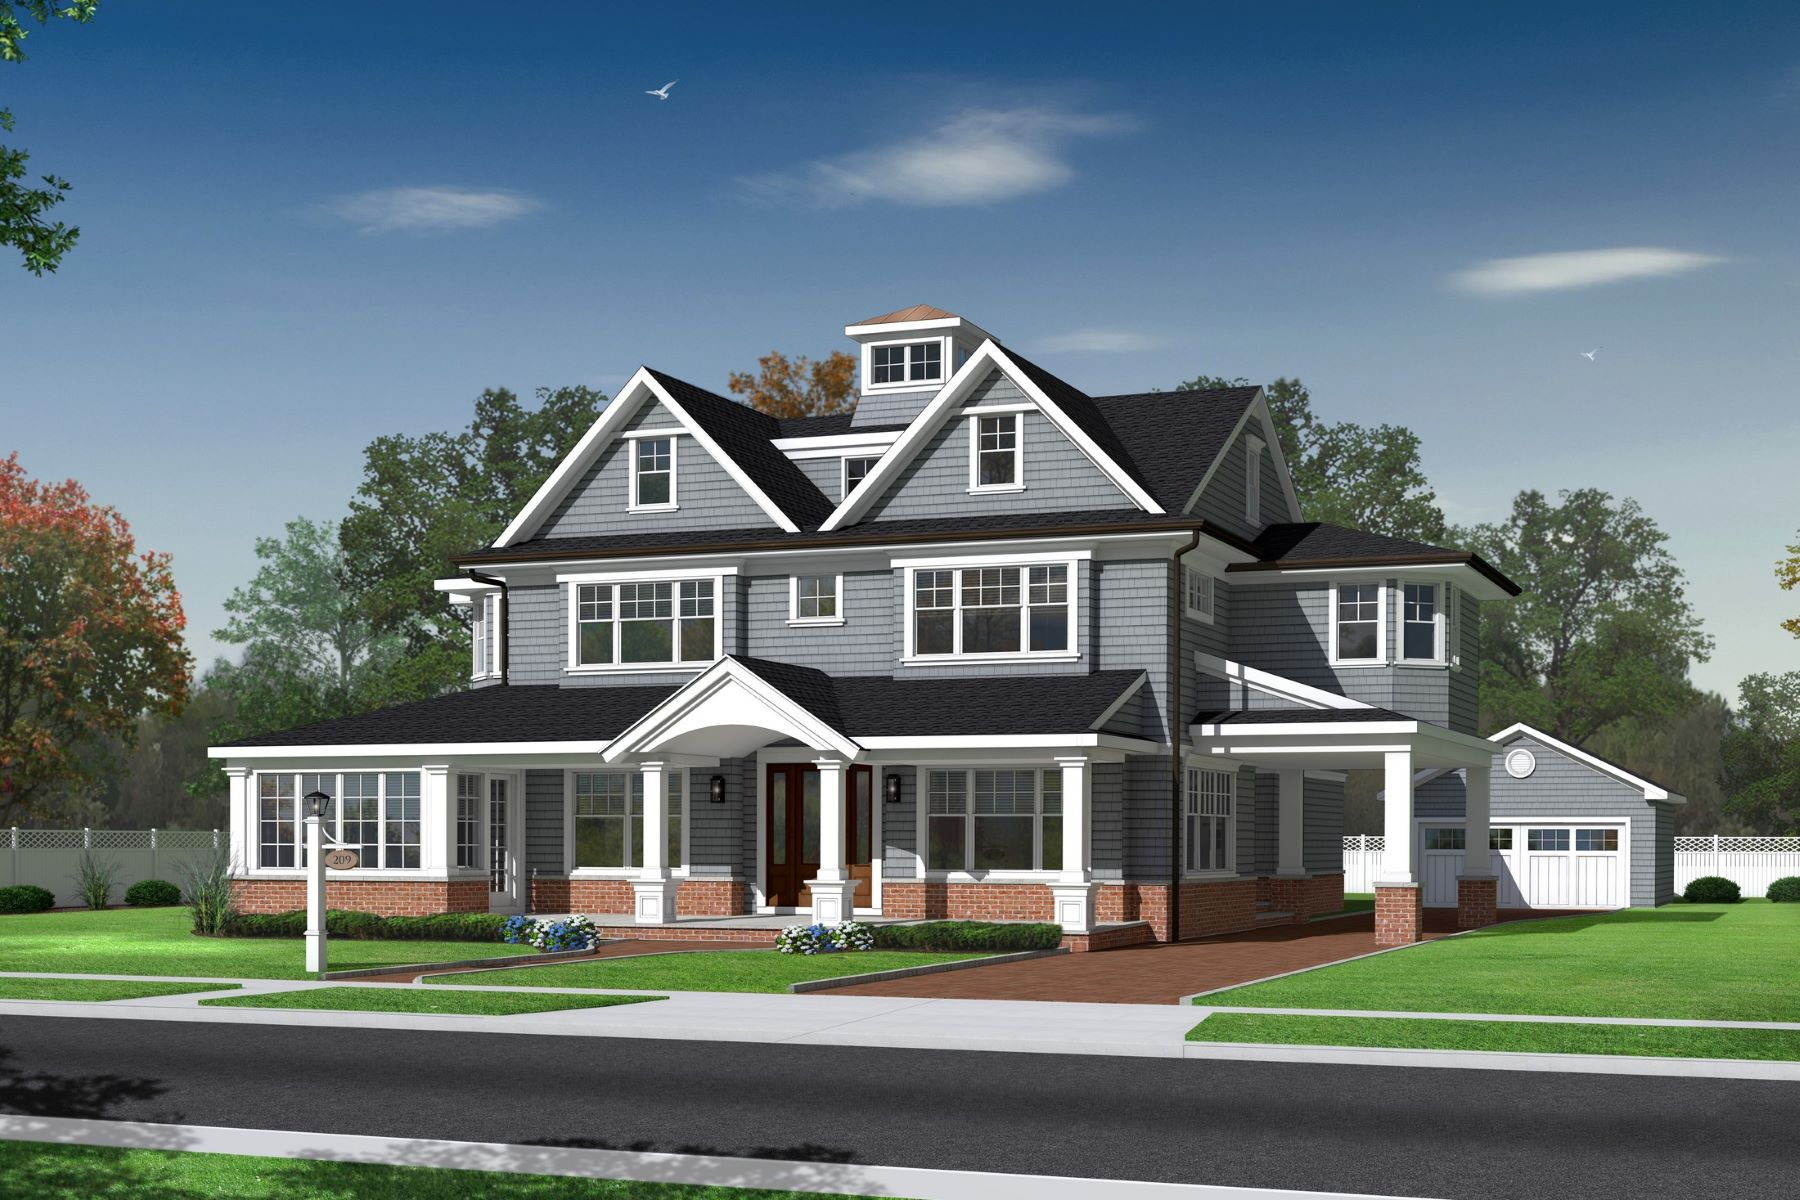 Villa per Vendita alle ore Spring Lake New Construction 209 Jersey Avenue, Spring Lake, New Jersey 07762 Stati Uniti